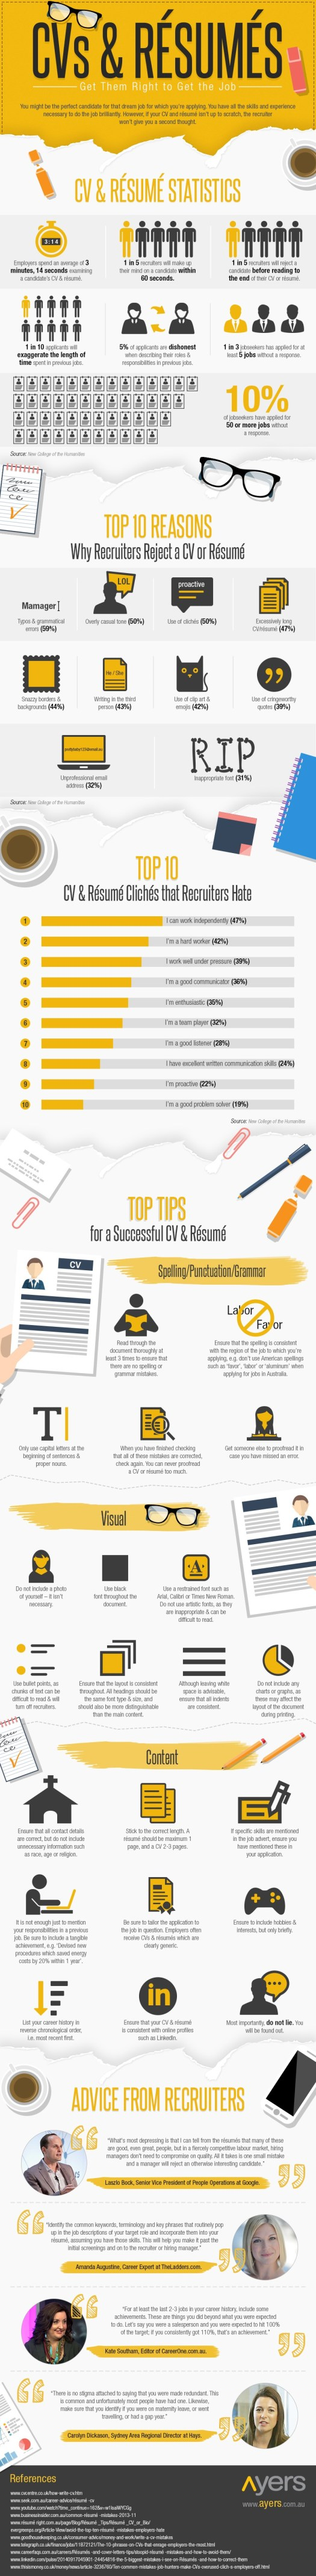 CVs & Resumes: Get Them Right to Get the Job Infographic